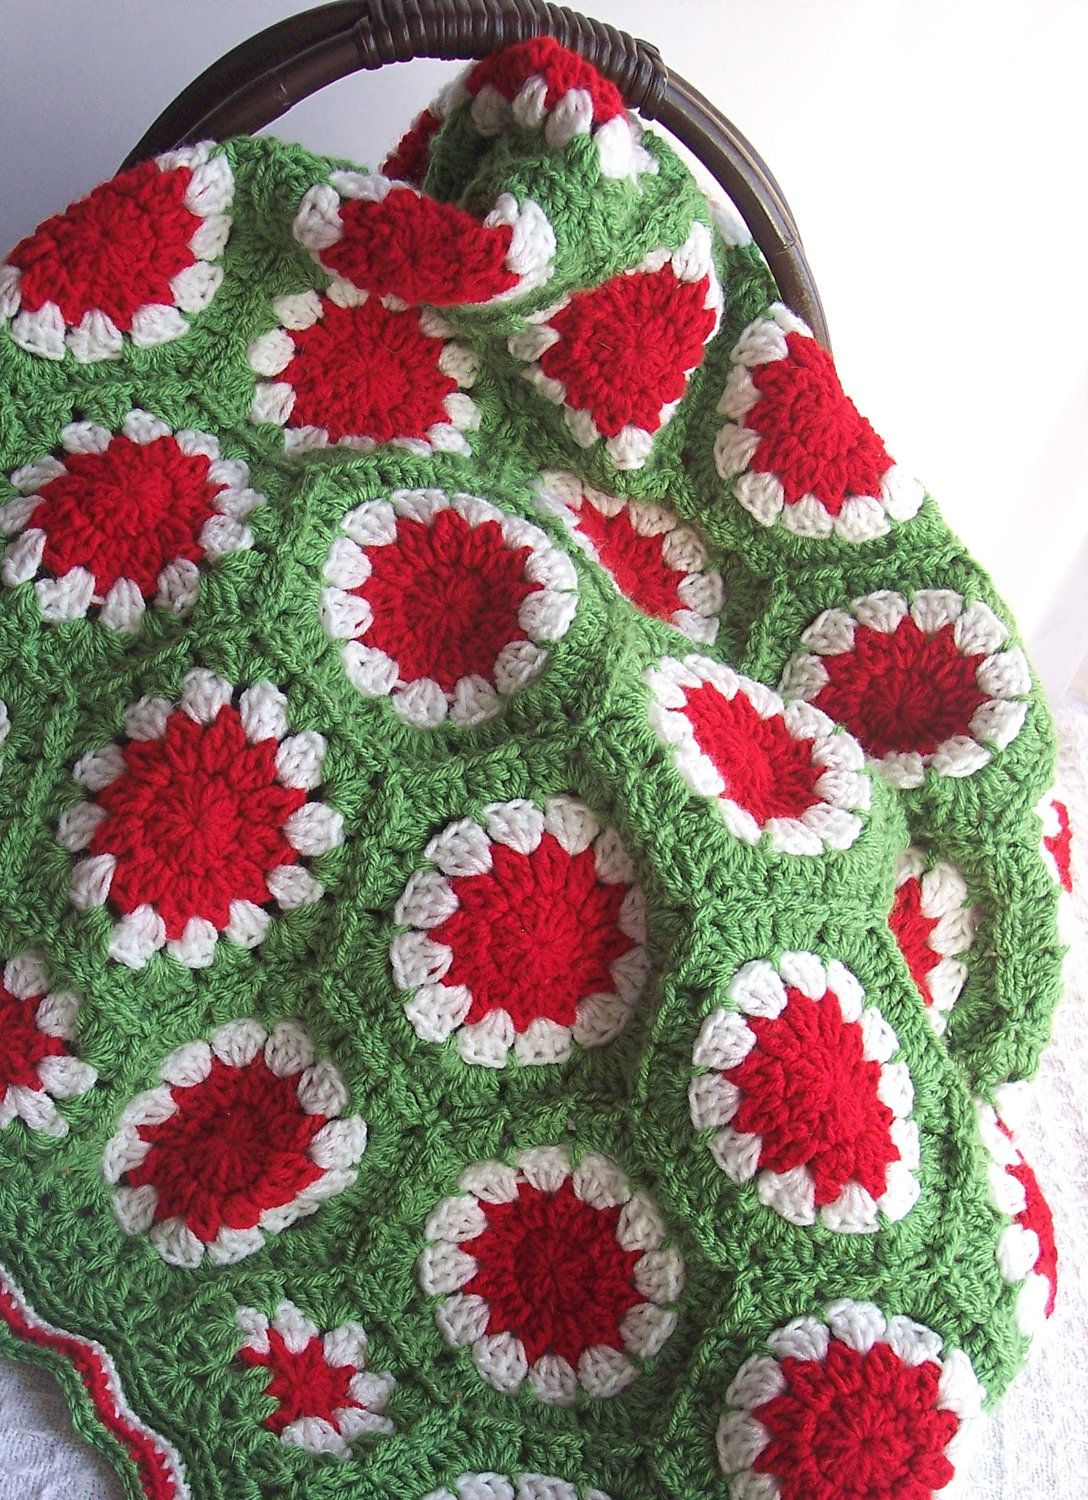 Red & Green Hexagon - Crochet Afghan Blanket - | Blanket and throw ...